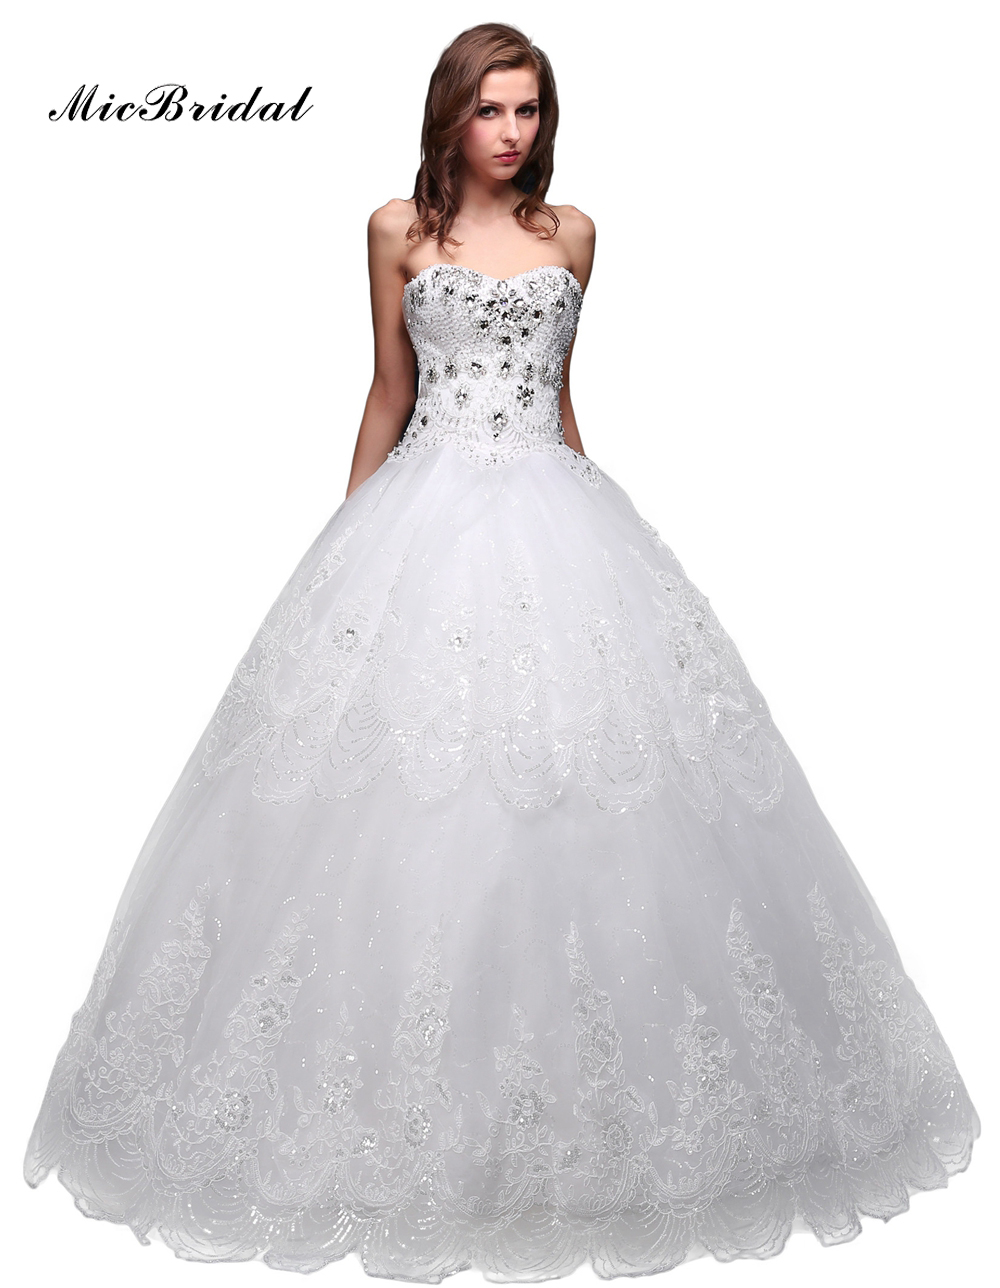 Wedding Dresses With Crystals : Micbridal free shipping ball gown princess sweetheart